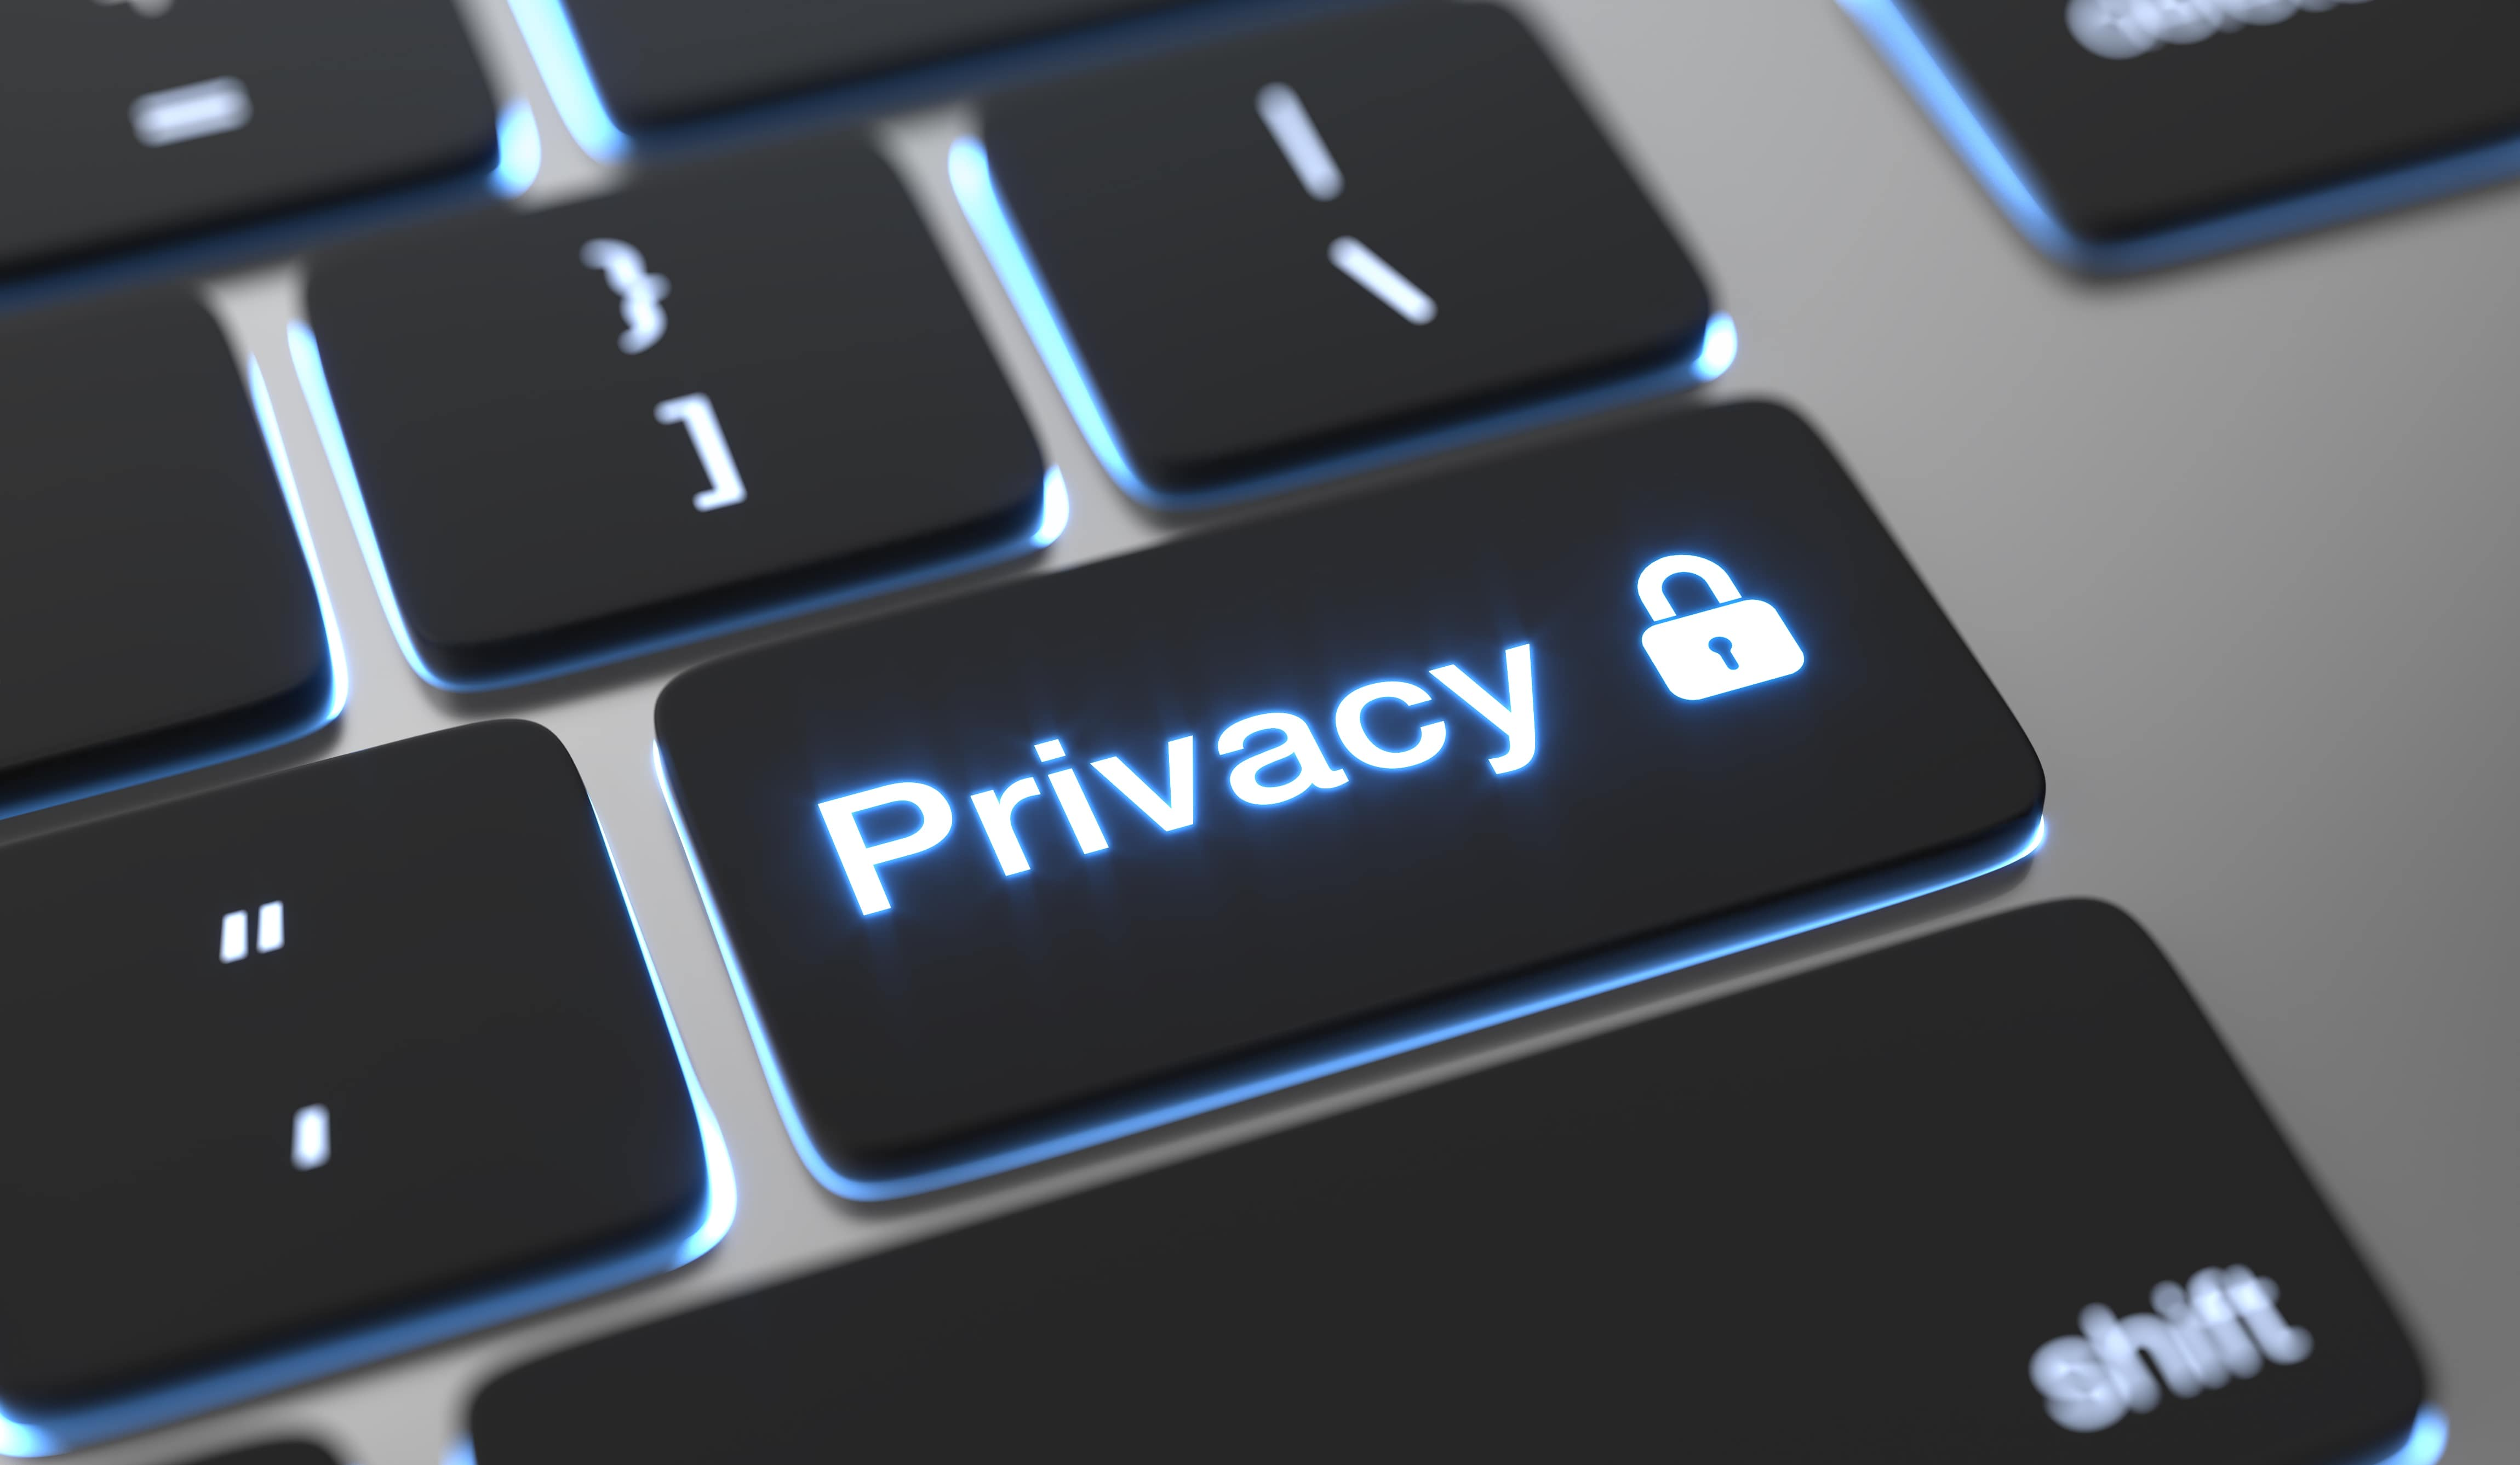 privacy-text-keyboard-button-min